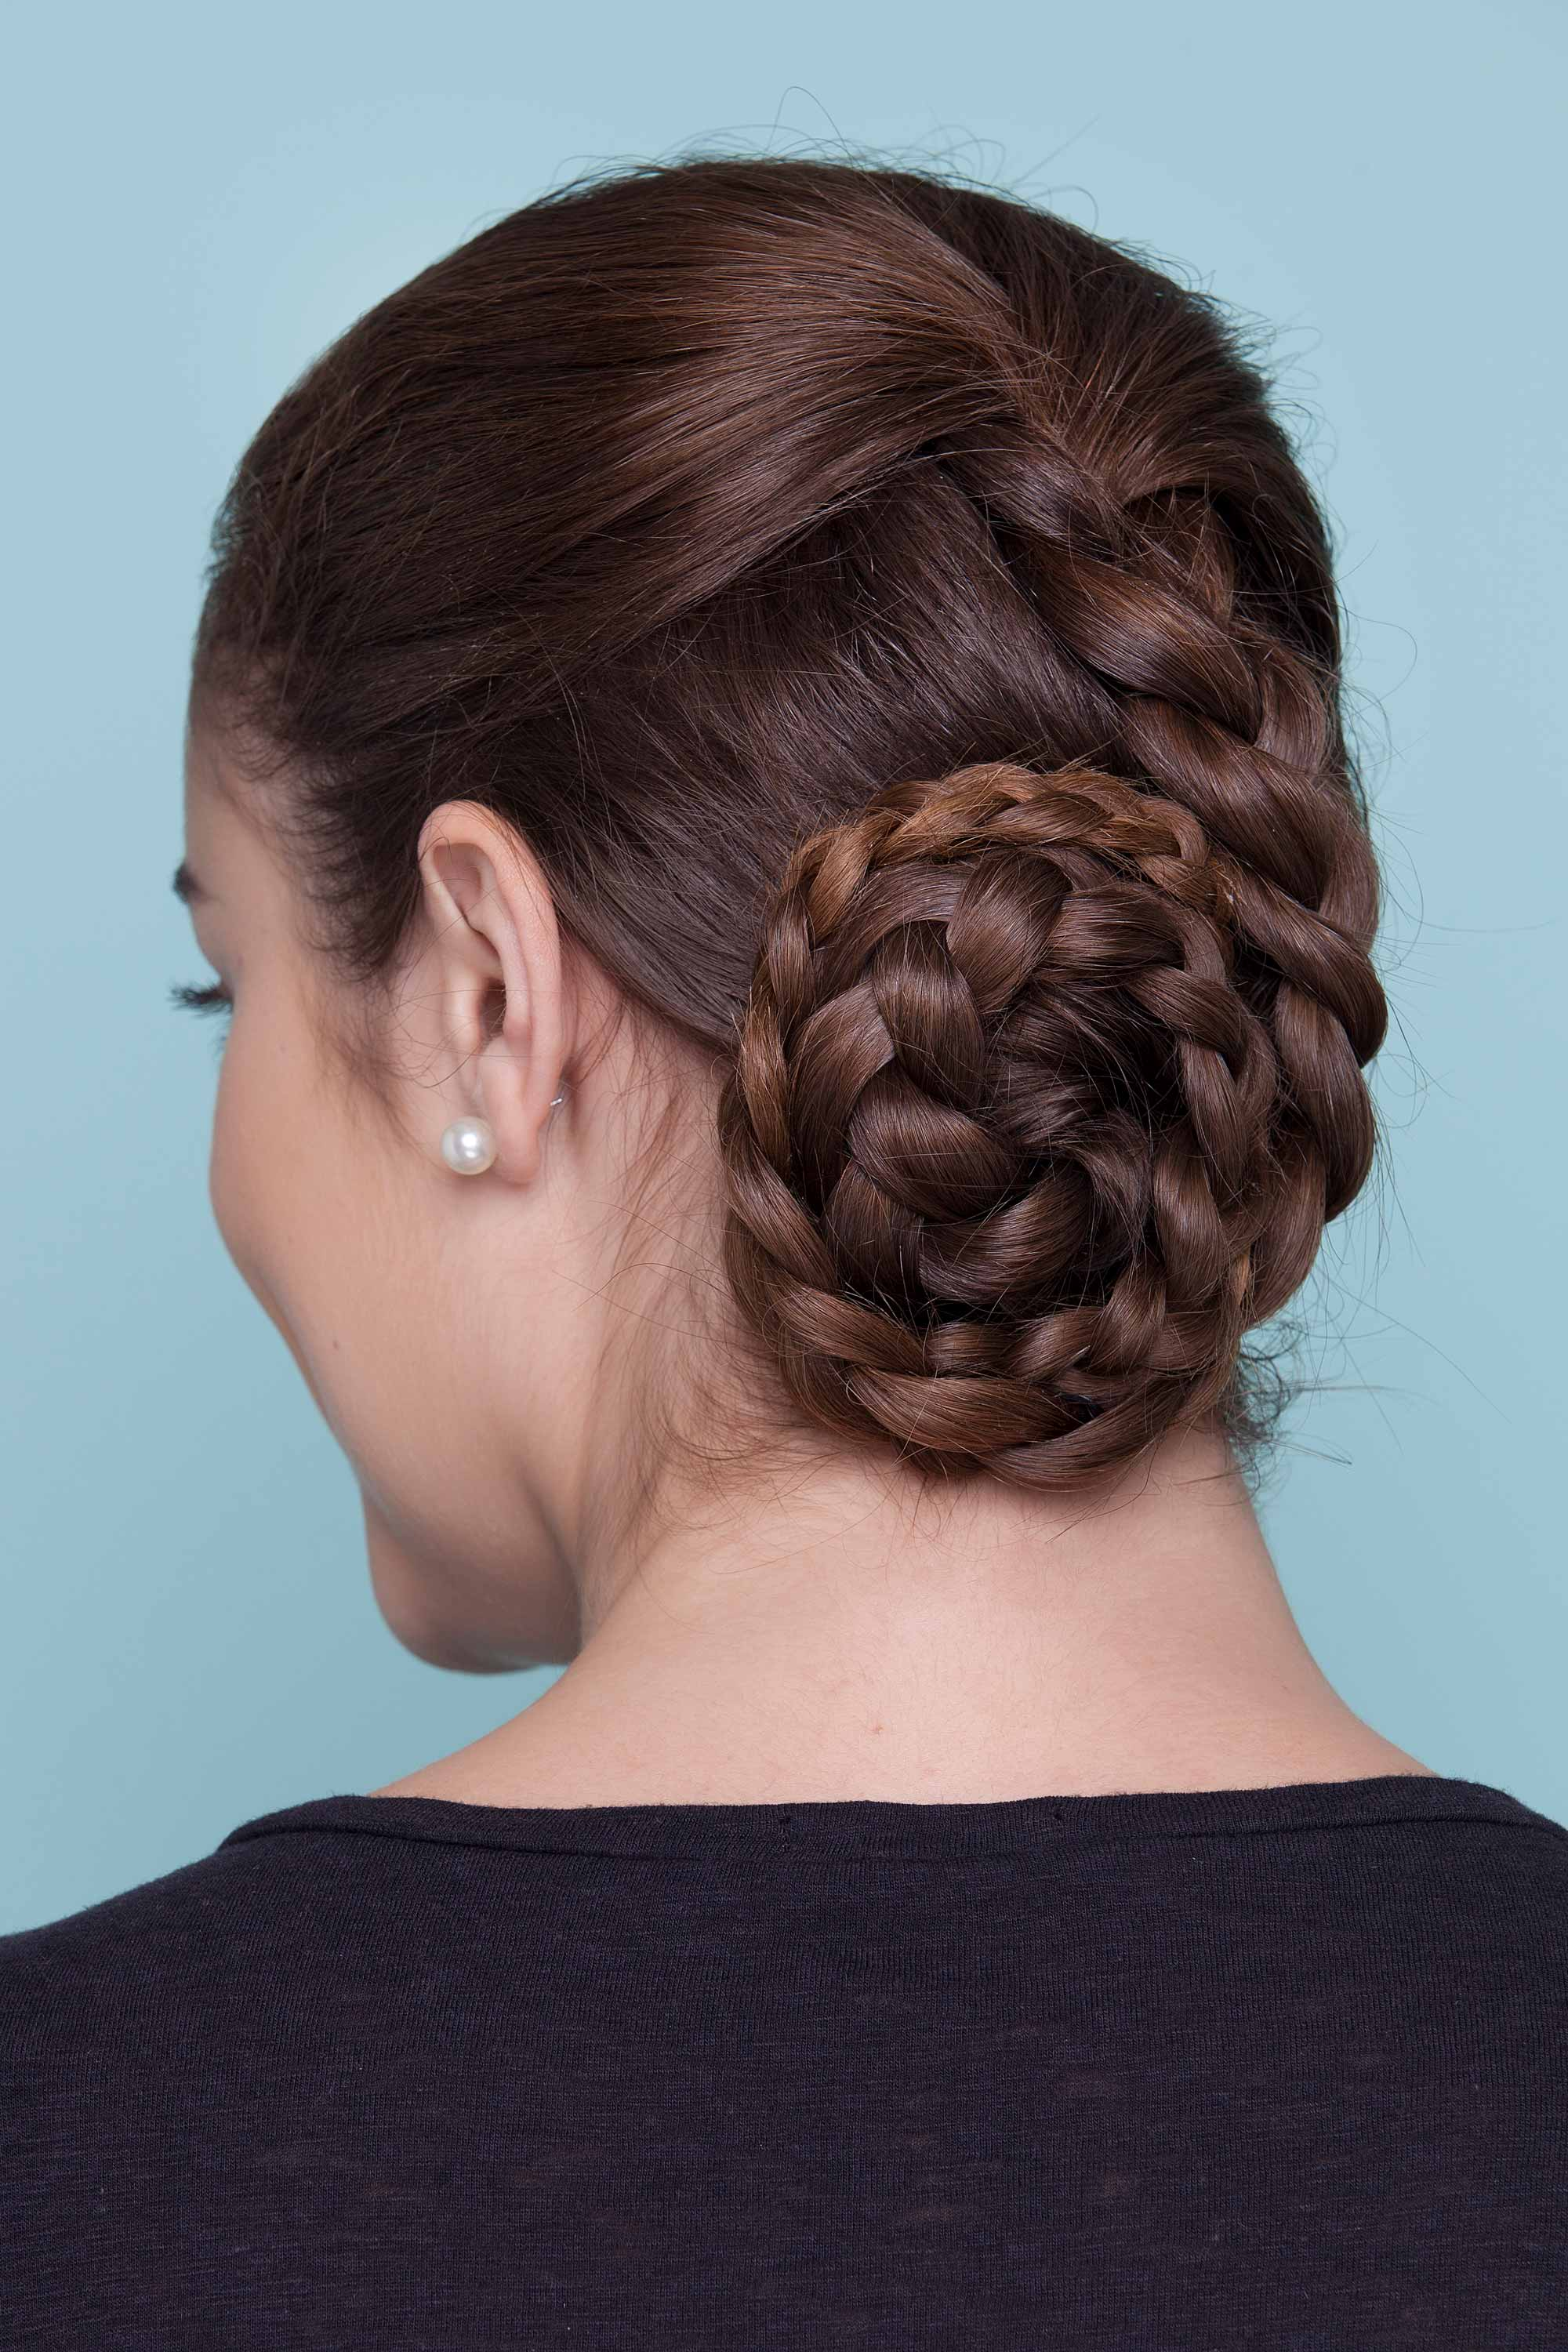 Double Braid Bun Tutorial: How to Master this Hairstyle in 2 Ways